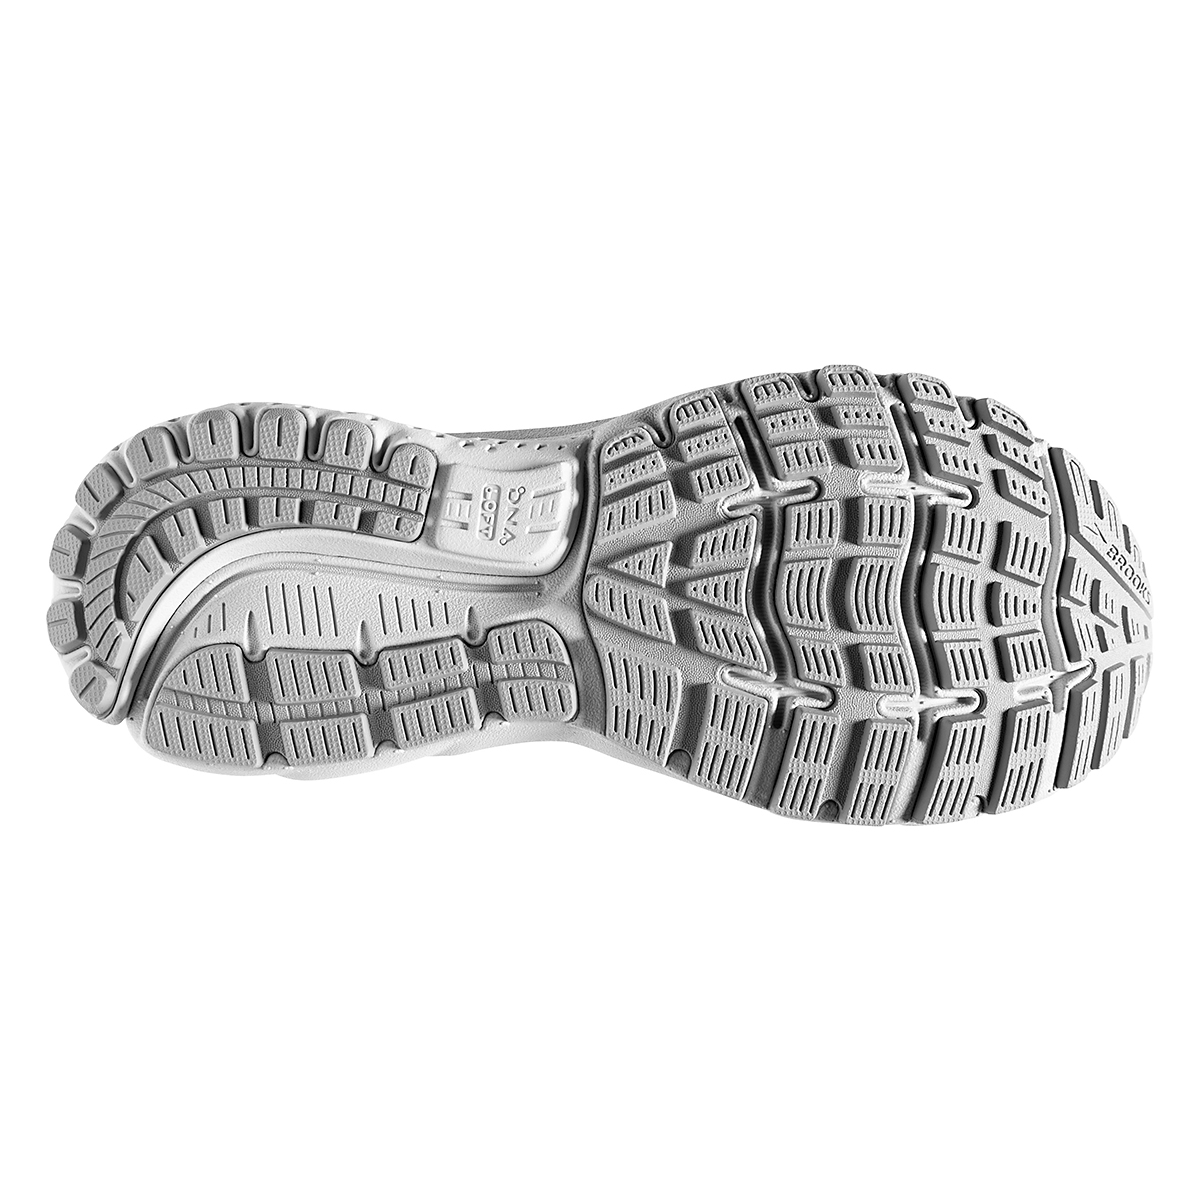 Women's Brooks Ghost 12 Running Shoe - Color: Oyster/Alloy/White - Size: 8.5 - Width: Regular, Oyster/Alloy/White, large, image 6